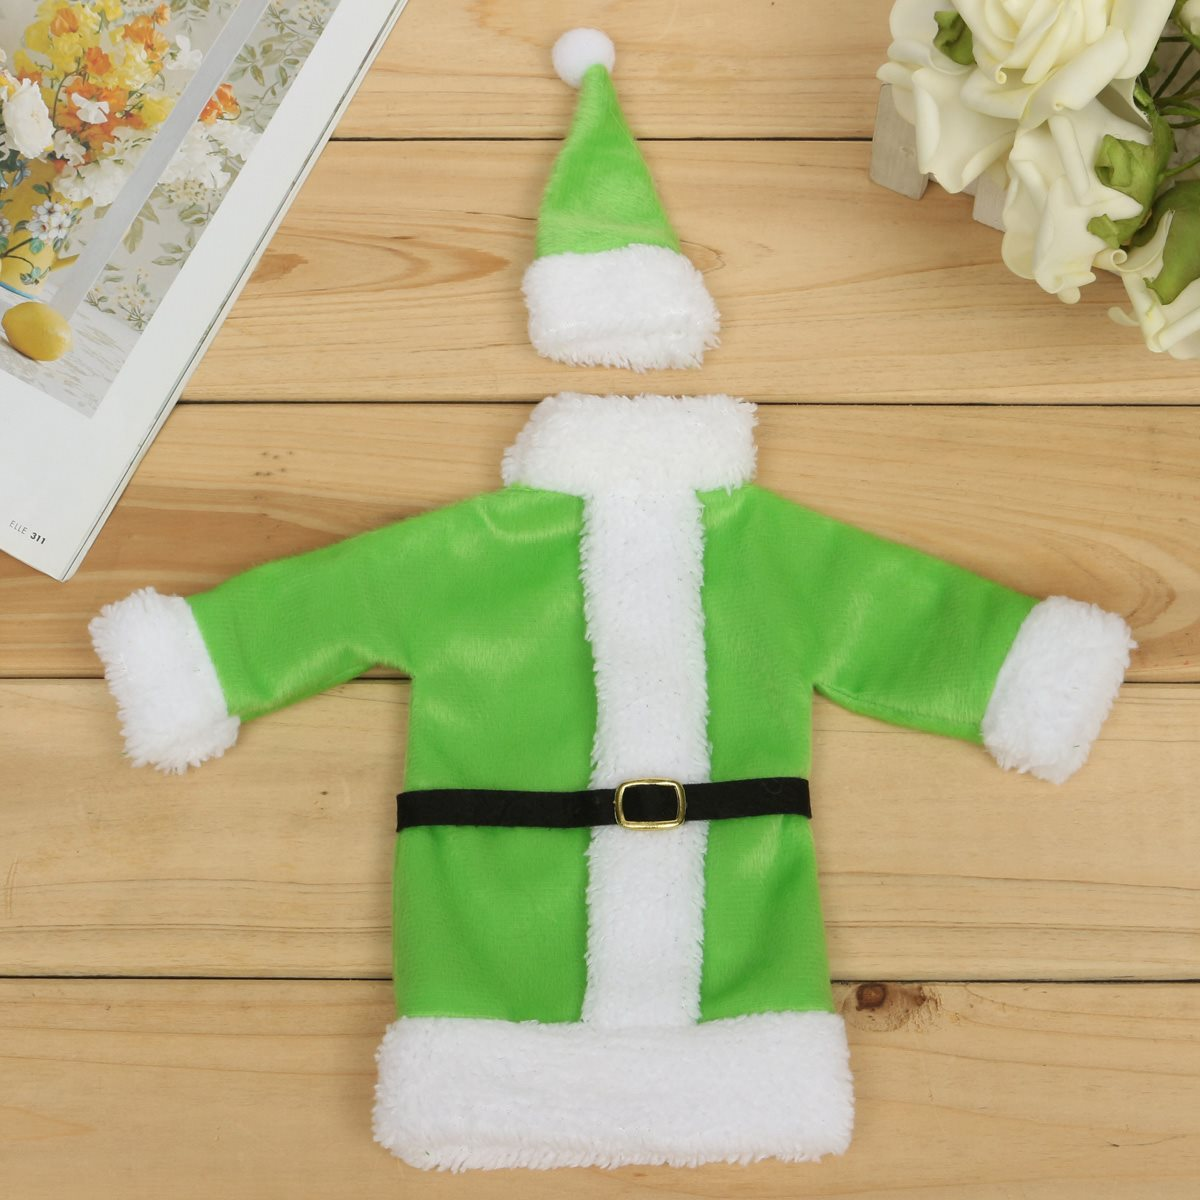 Cloth Christmas Wine Bottle Bag Christmas Dinner Party Bottle Storage Cover Gift Bag Souvenir Christmas Party Decorative Gadgets(China (Mainland))